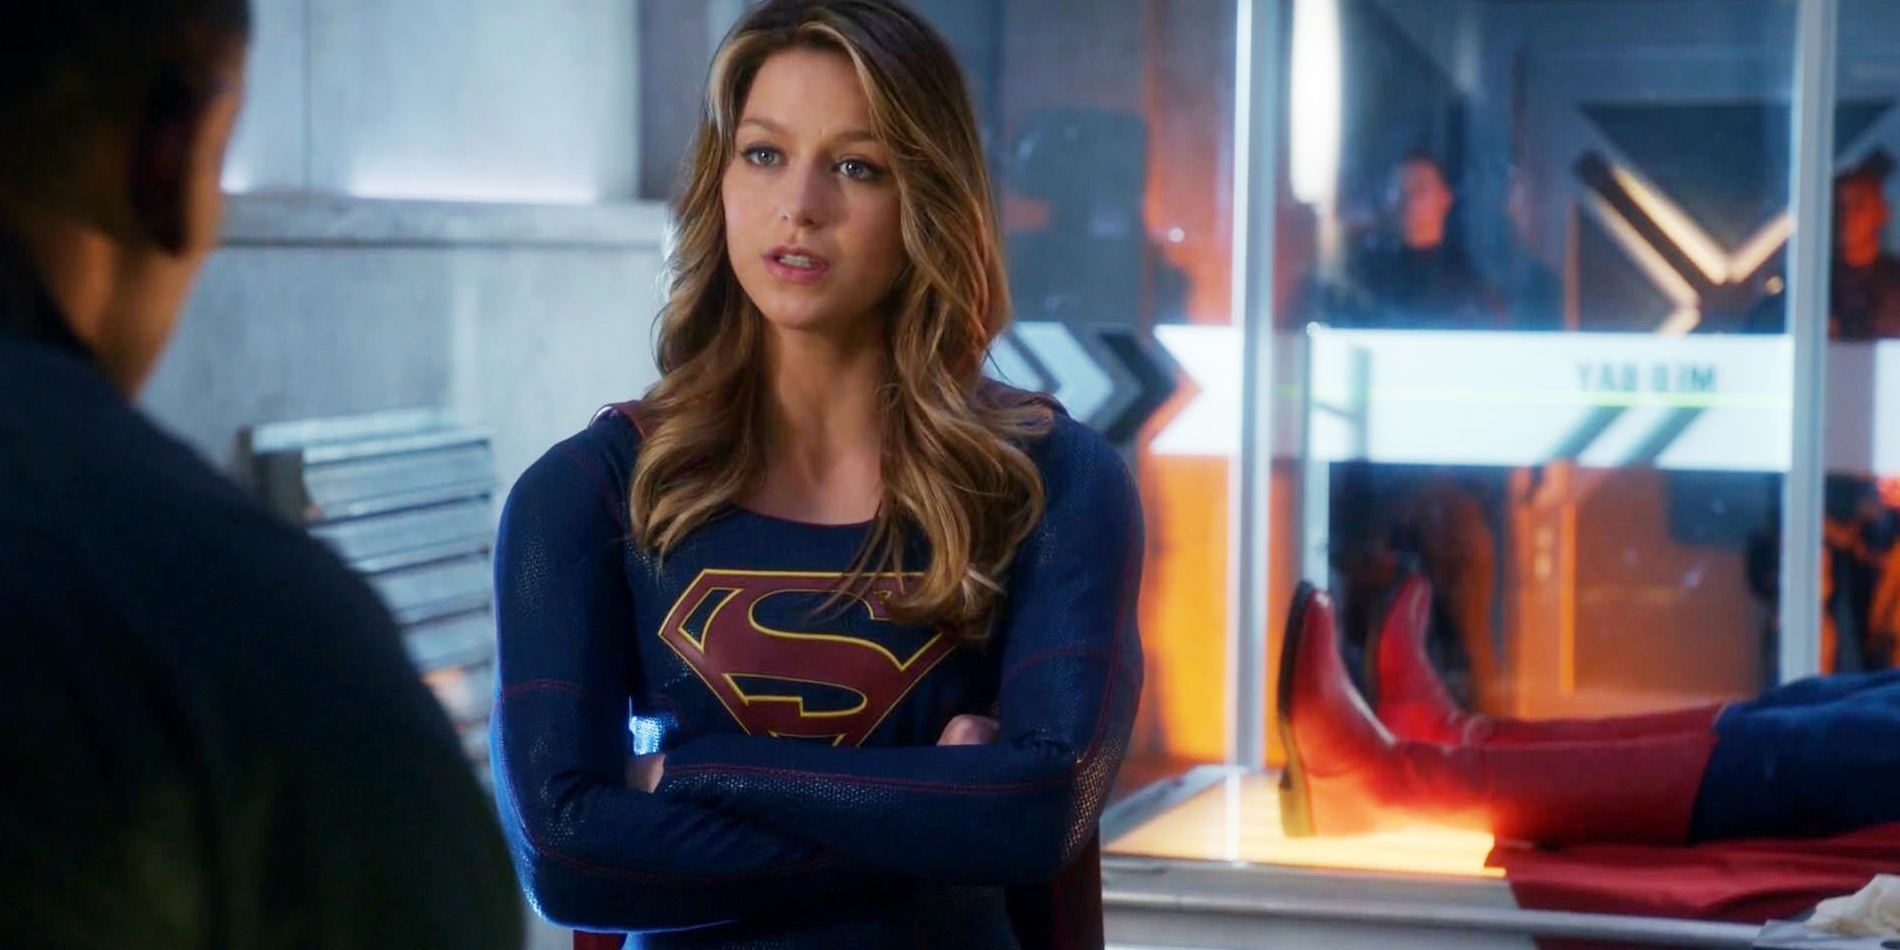 Supergirl TV Superman Boots Cameo Supergirl Producer: Warner Bros. Was 'Supportive' of Superman Plan